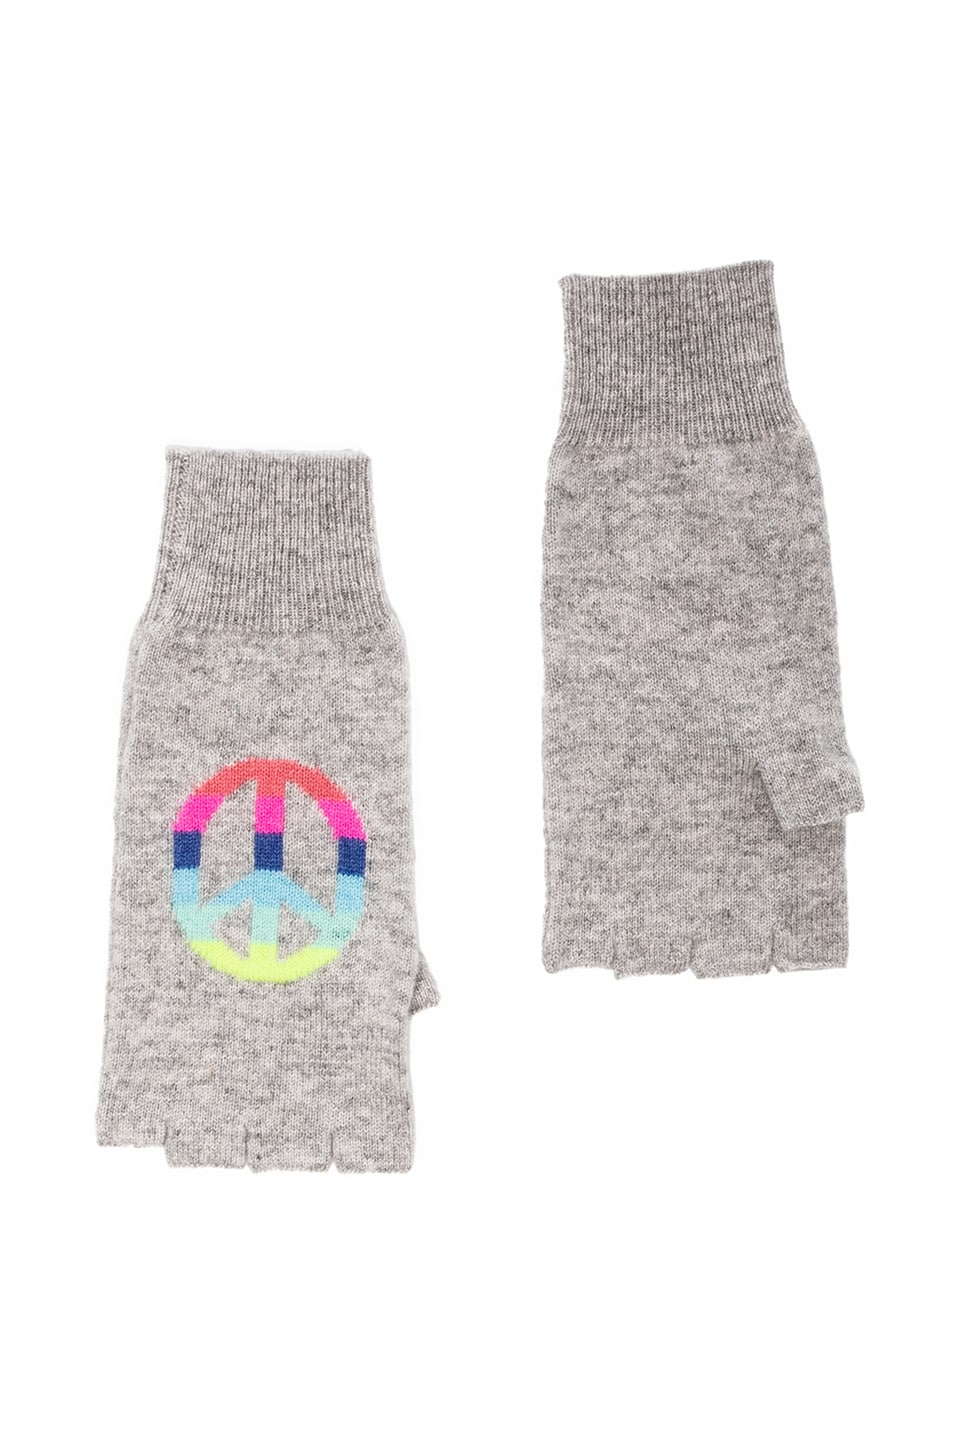 Autumn Cashmere Rainbow Peace Fingerless Gloves in Fog Combo